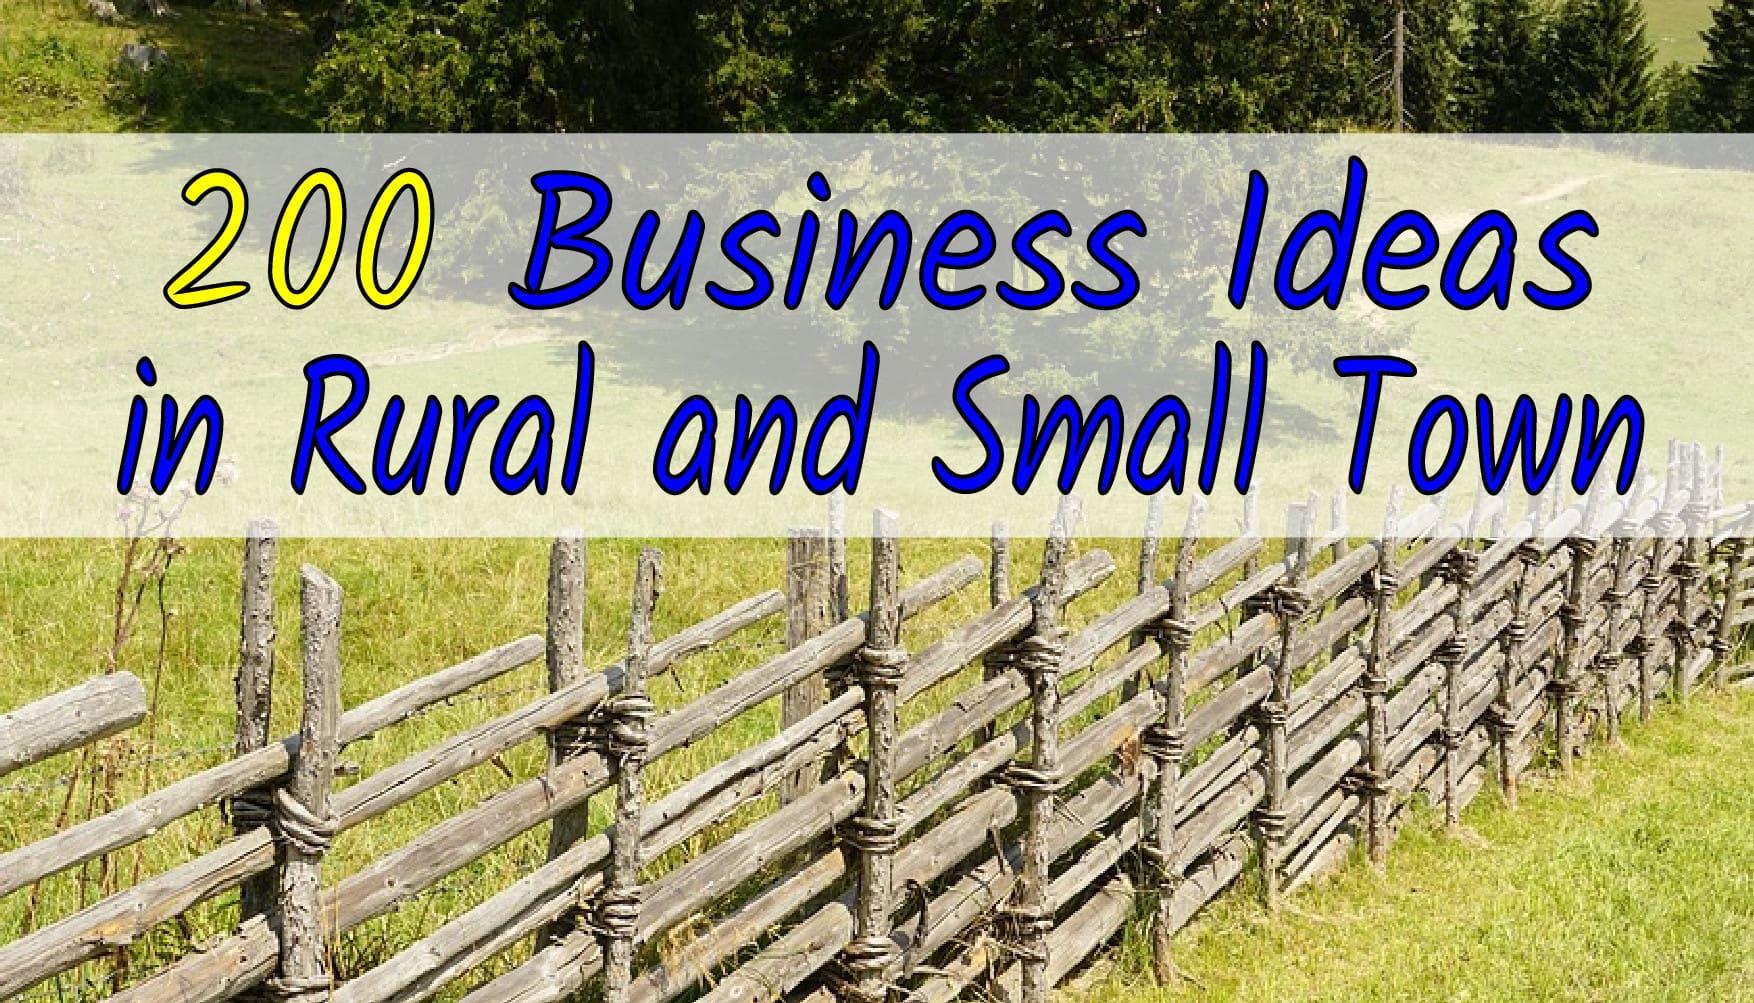 10 Stunning Business Ideas For Rural Areas give 200 business ideas in rural areas and small townchris tong 2021